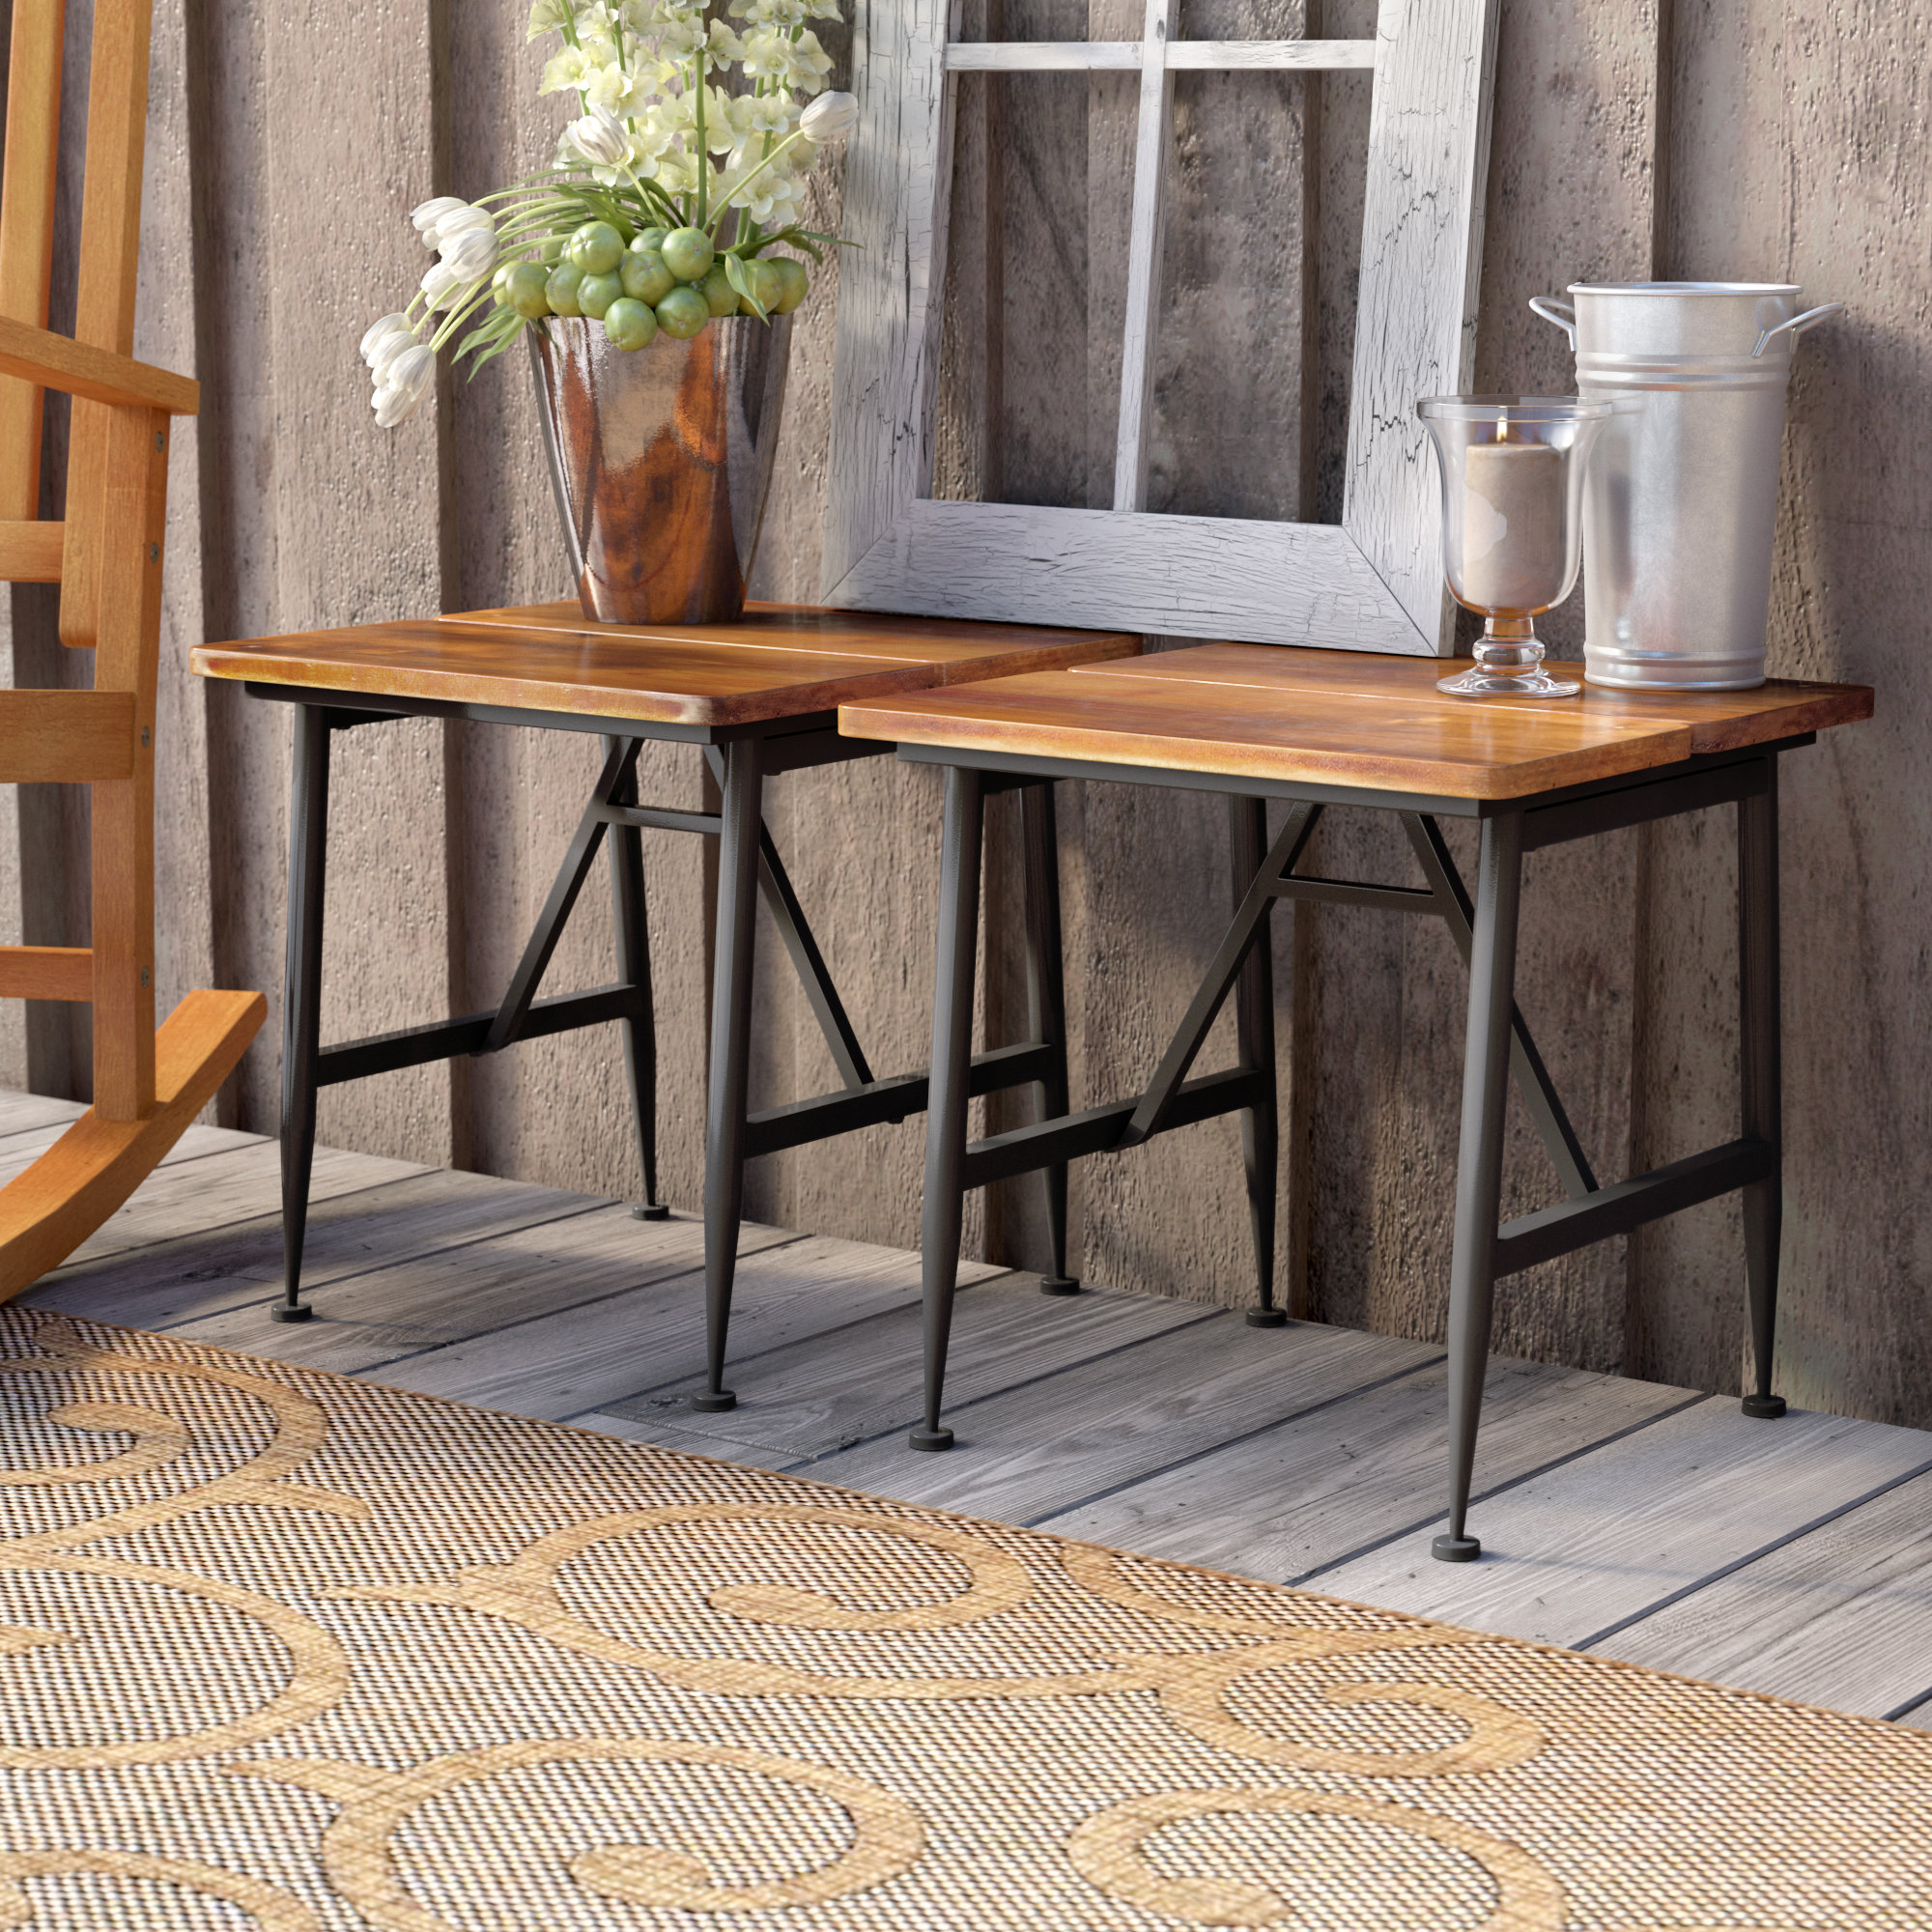 threshold furniture decorative tables living glass gold accent tall round and table target cabinet for storage antique outdoor ott modern bench room full size garden side sydney